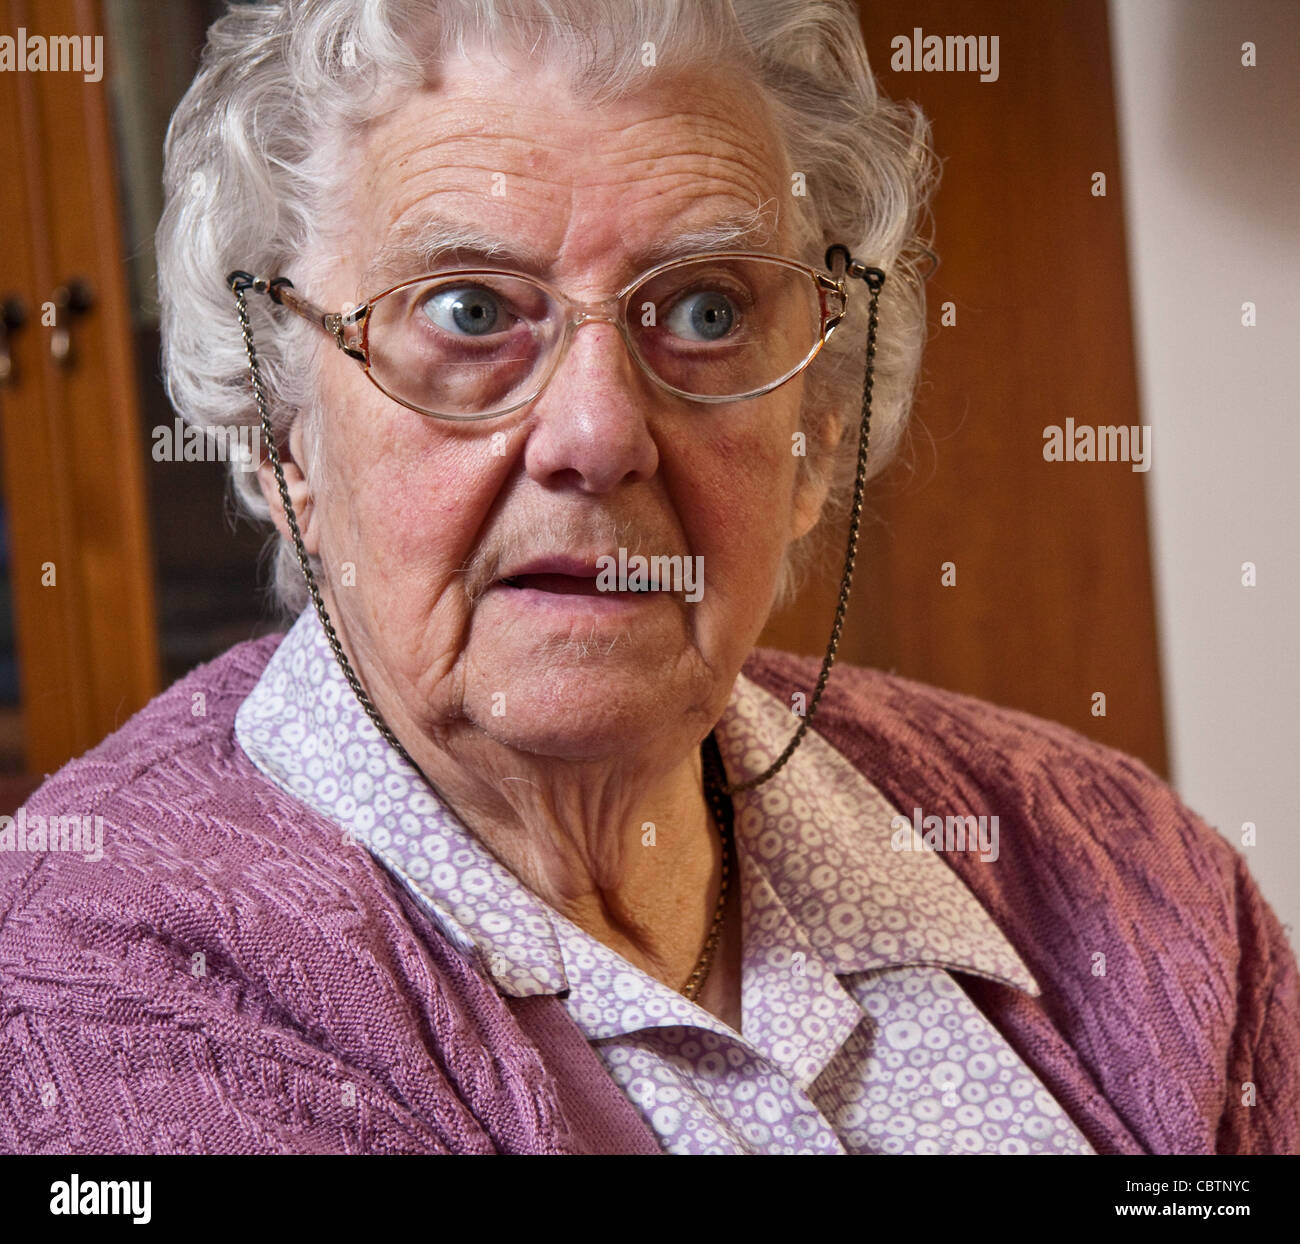 Raconteur, writer and Suffolk countrywoman Peggy Cole MBE appeared in the 1974 film Akenfield. - Stock Image